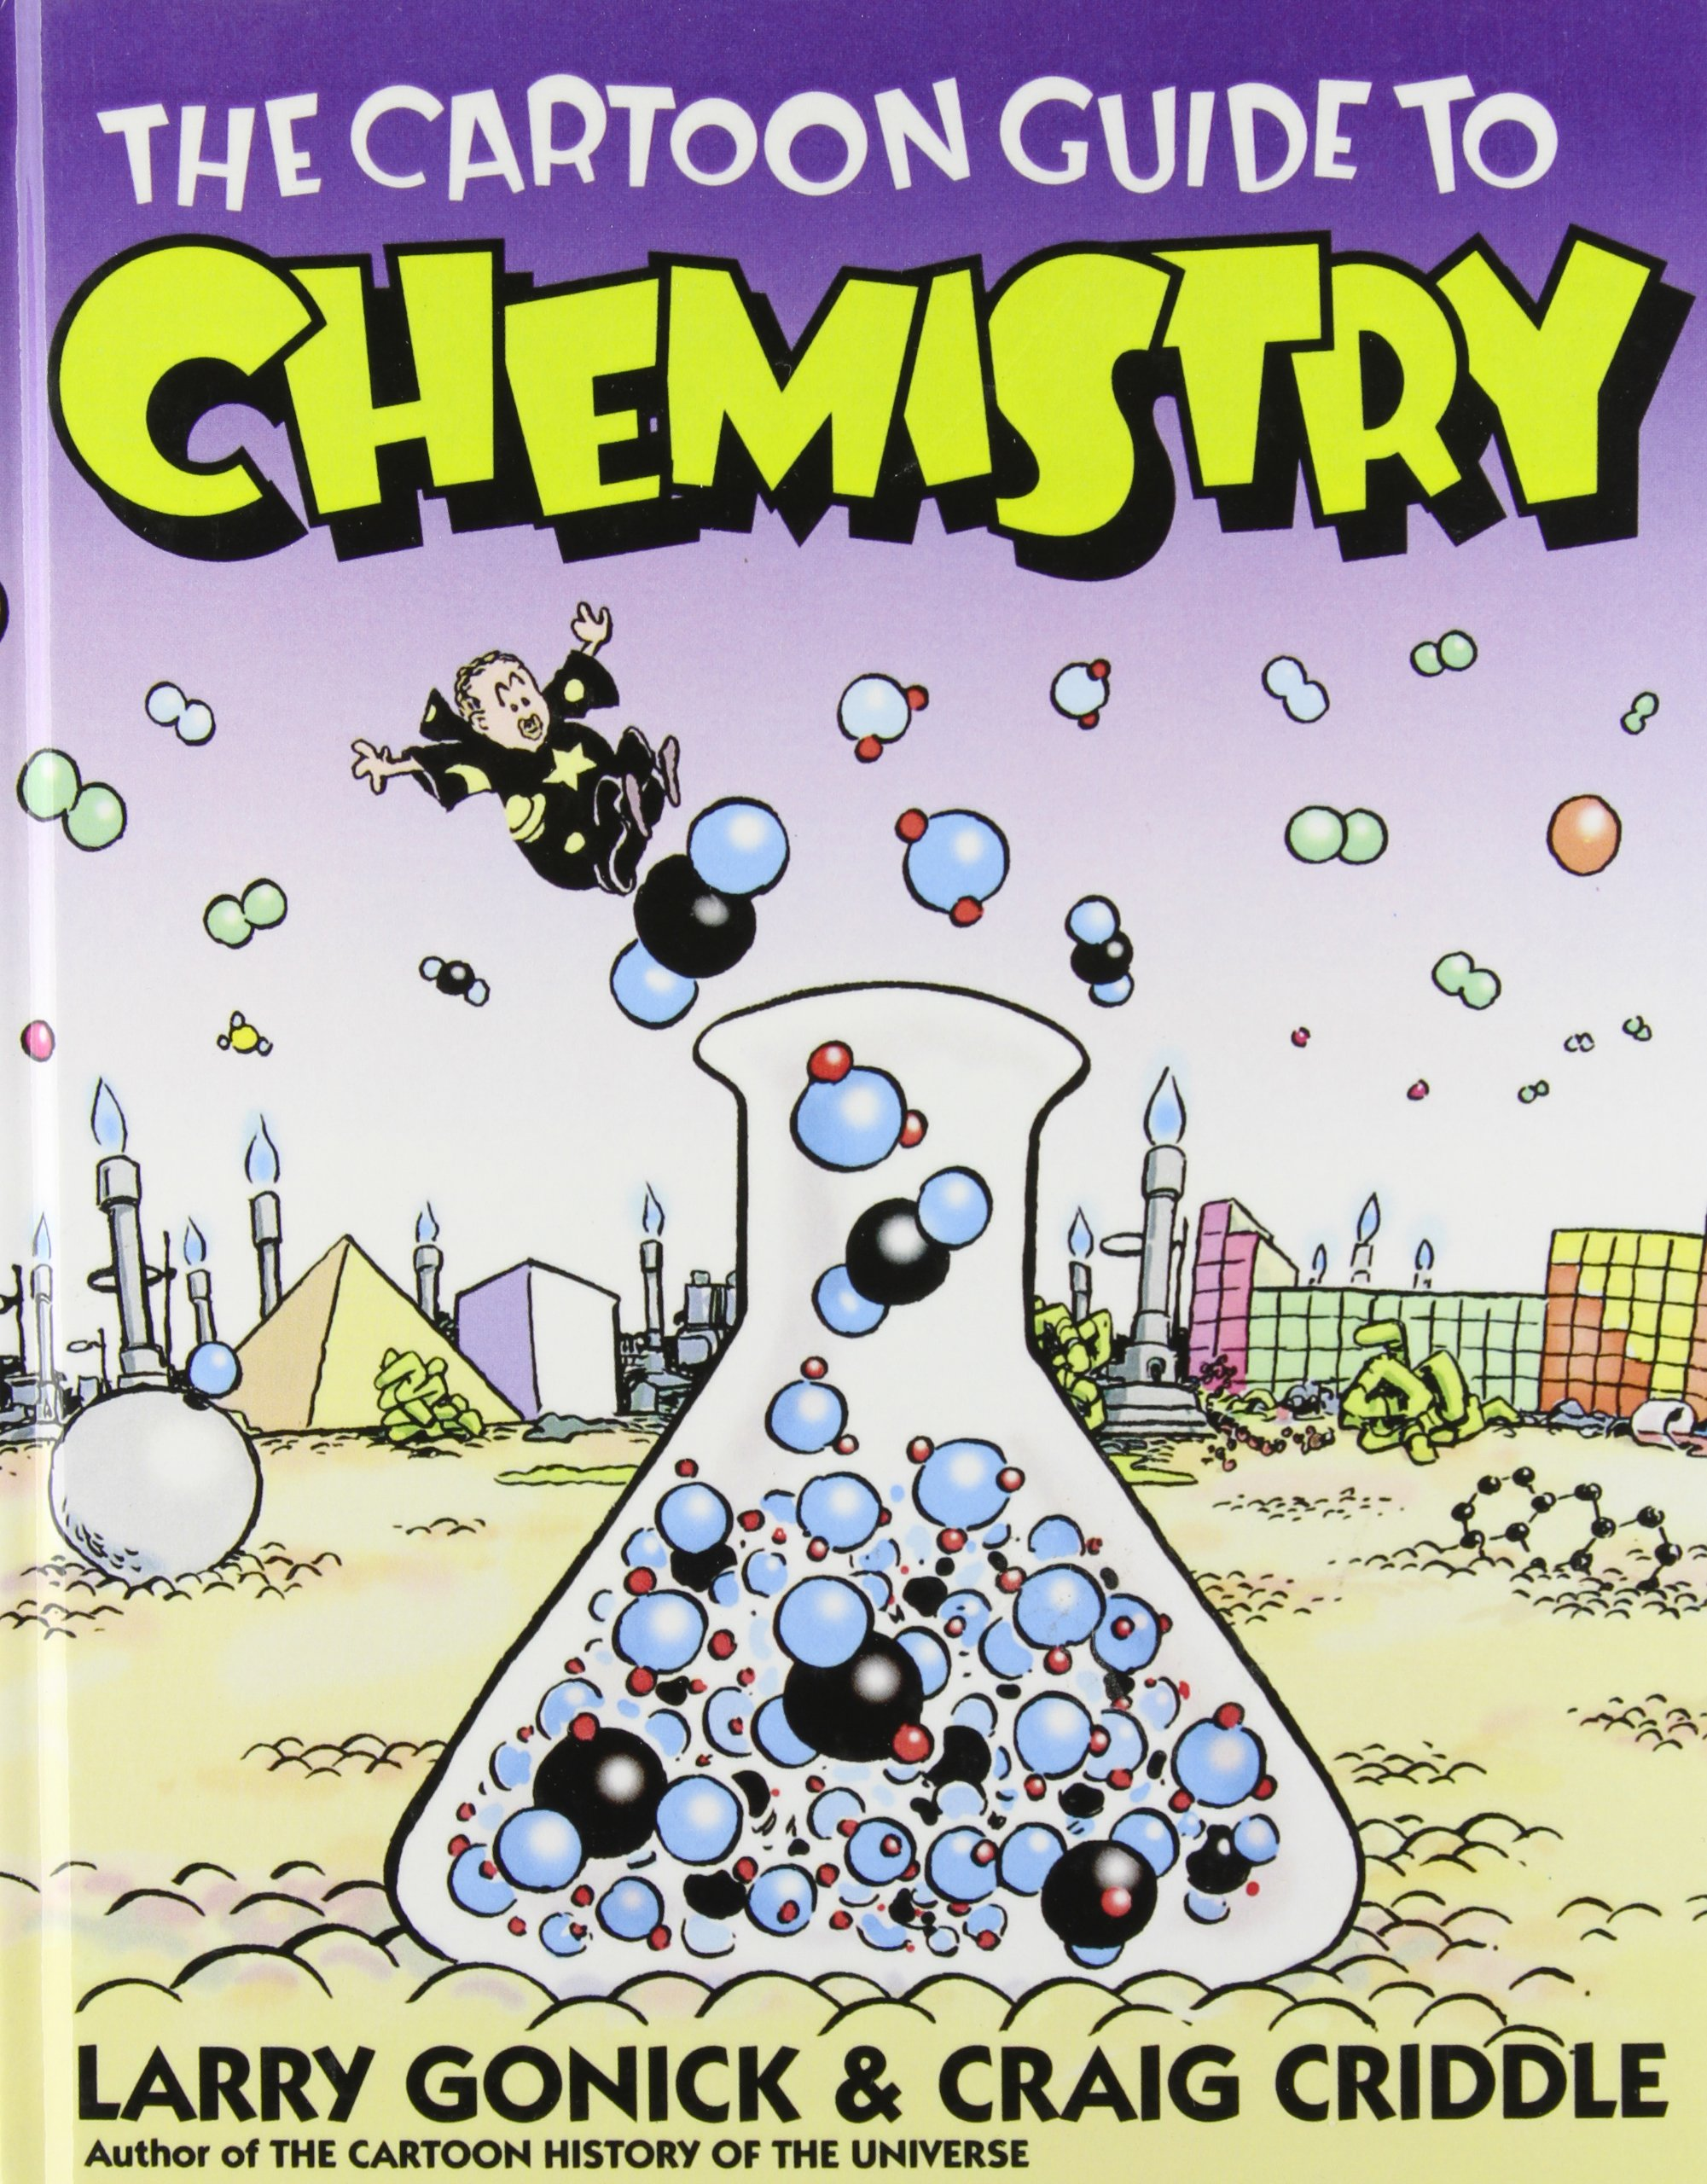 The Cartoon Guide to Chemistry: Amazon.co.uk: Larry Gonick, Craig Criddle:  9781435242692: Books